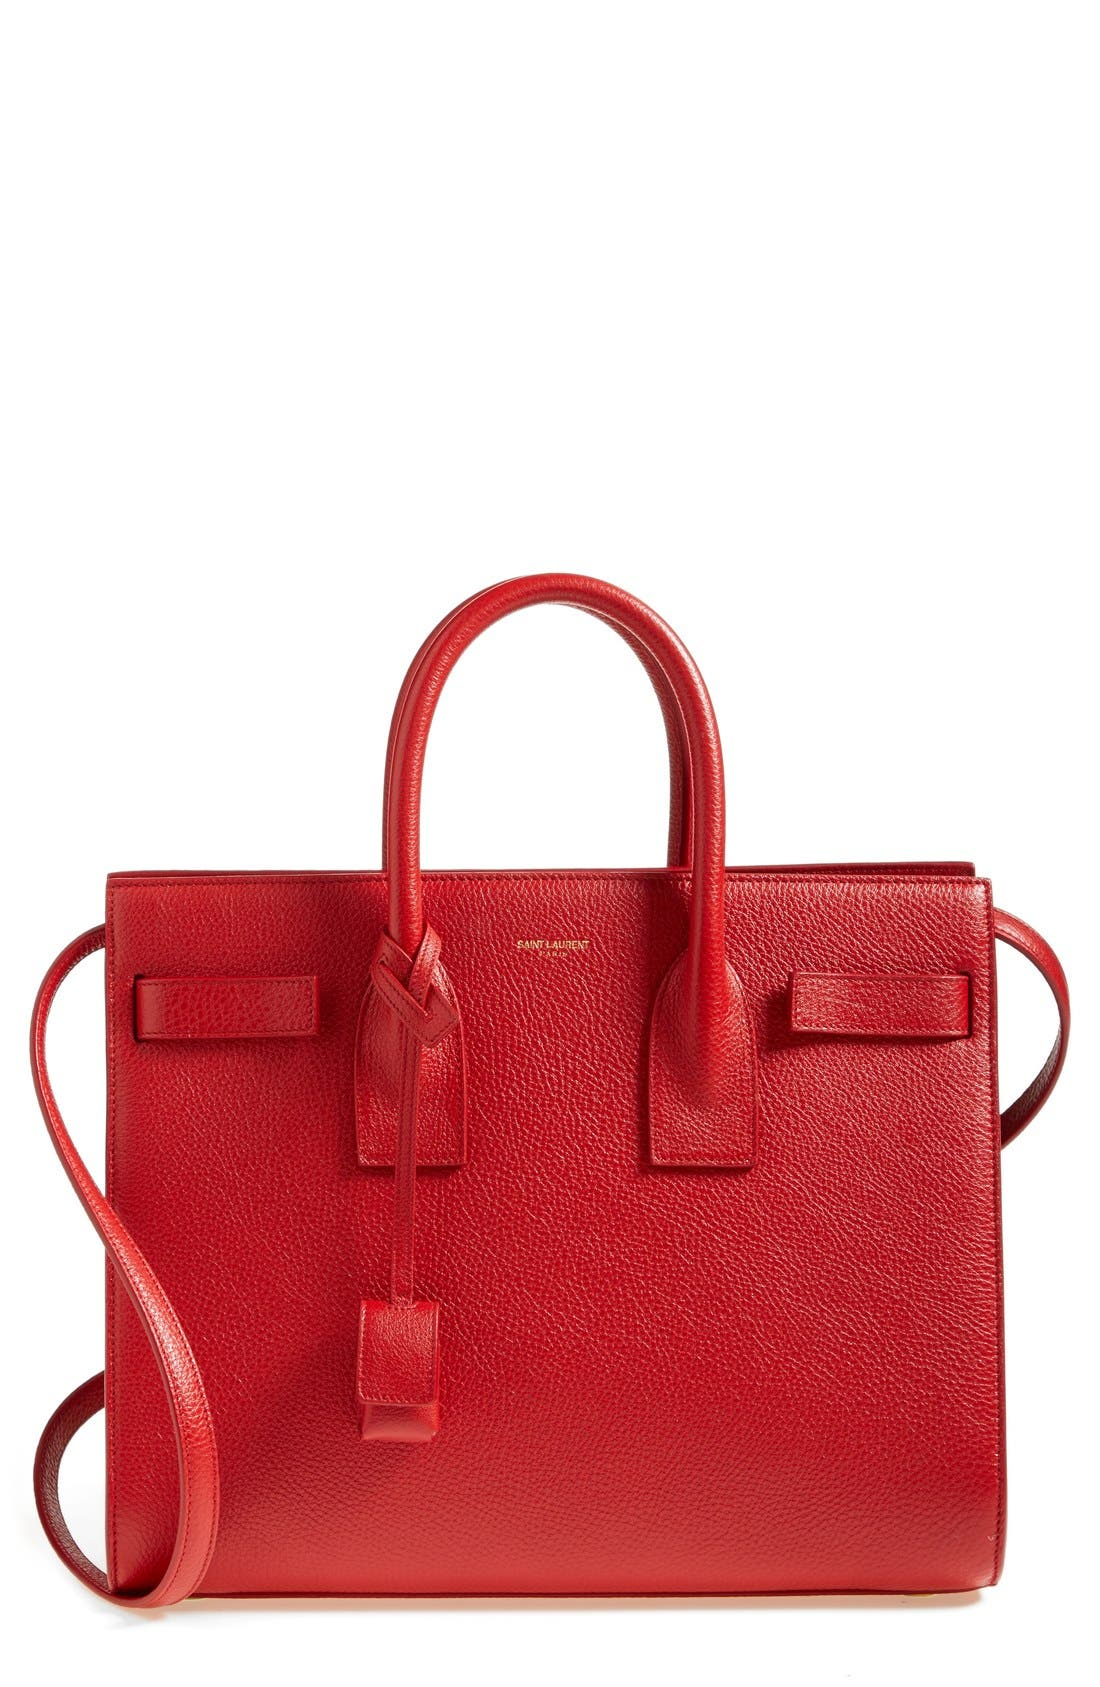 Alternate Image 1 Selected - Saint Laurent 'Small Sac de Jour' Grained Leather Tote